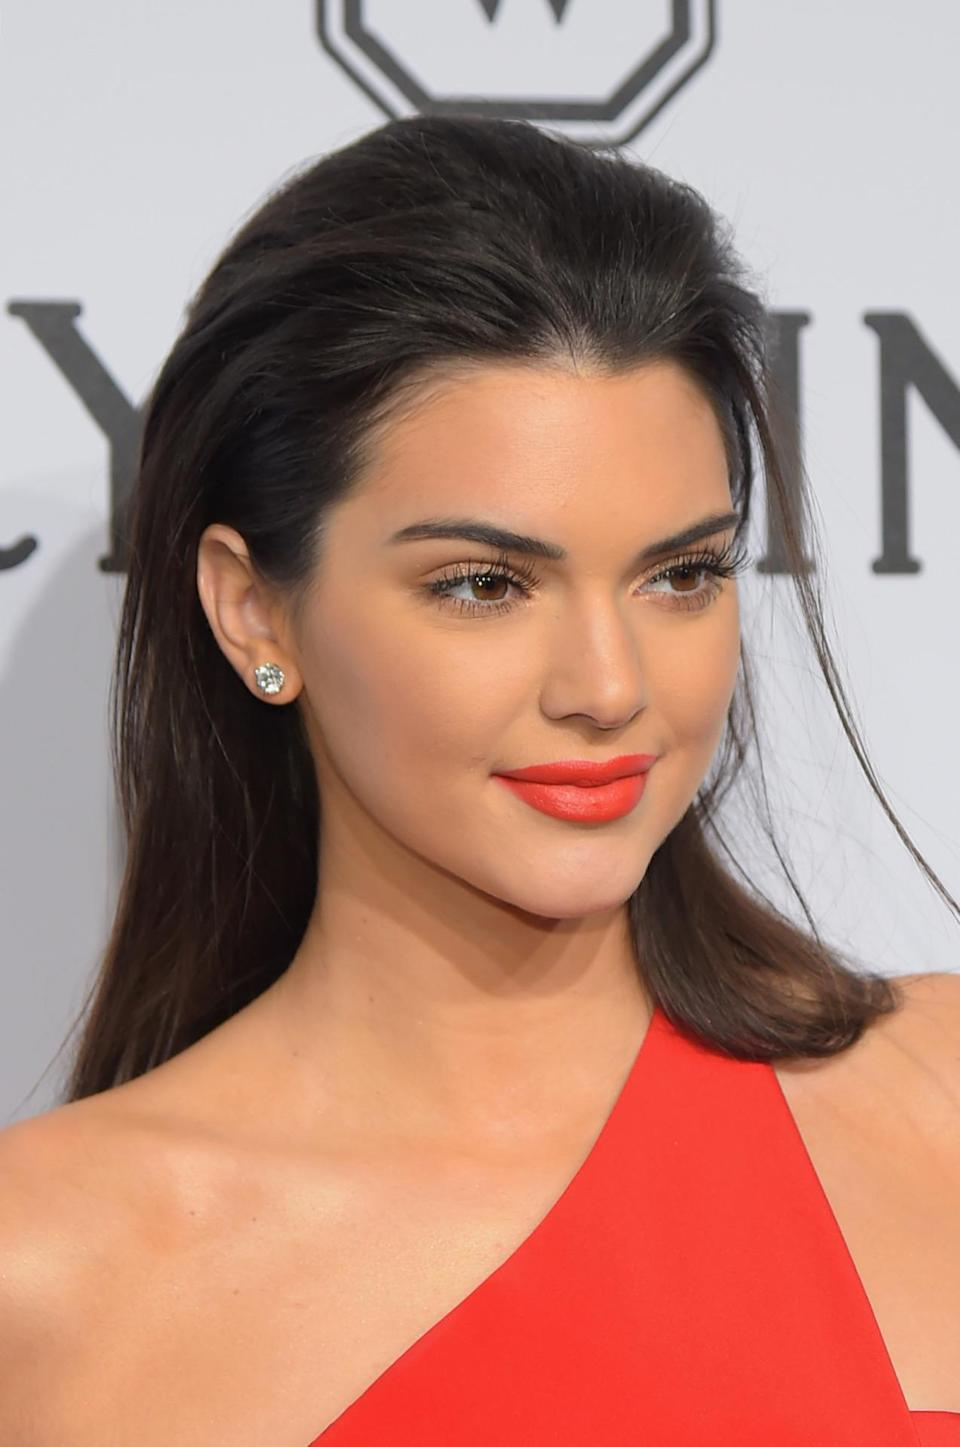 <p>At the amfAR New York Gala, Jenner was a classic bombshell in red lipstick that matched her gown, diamond studs, spider lashes, and hair brushed back. <i>(Photo: Getty Images)</i></p>